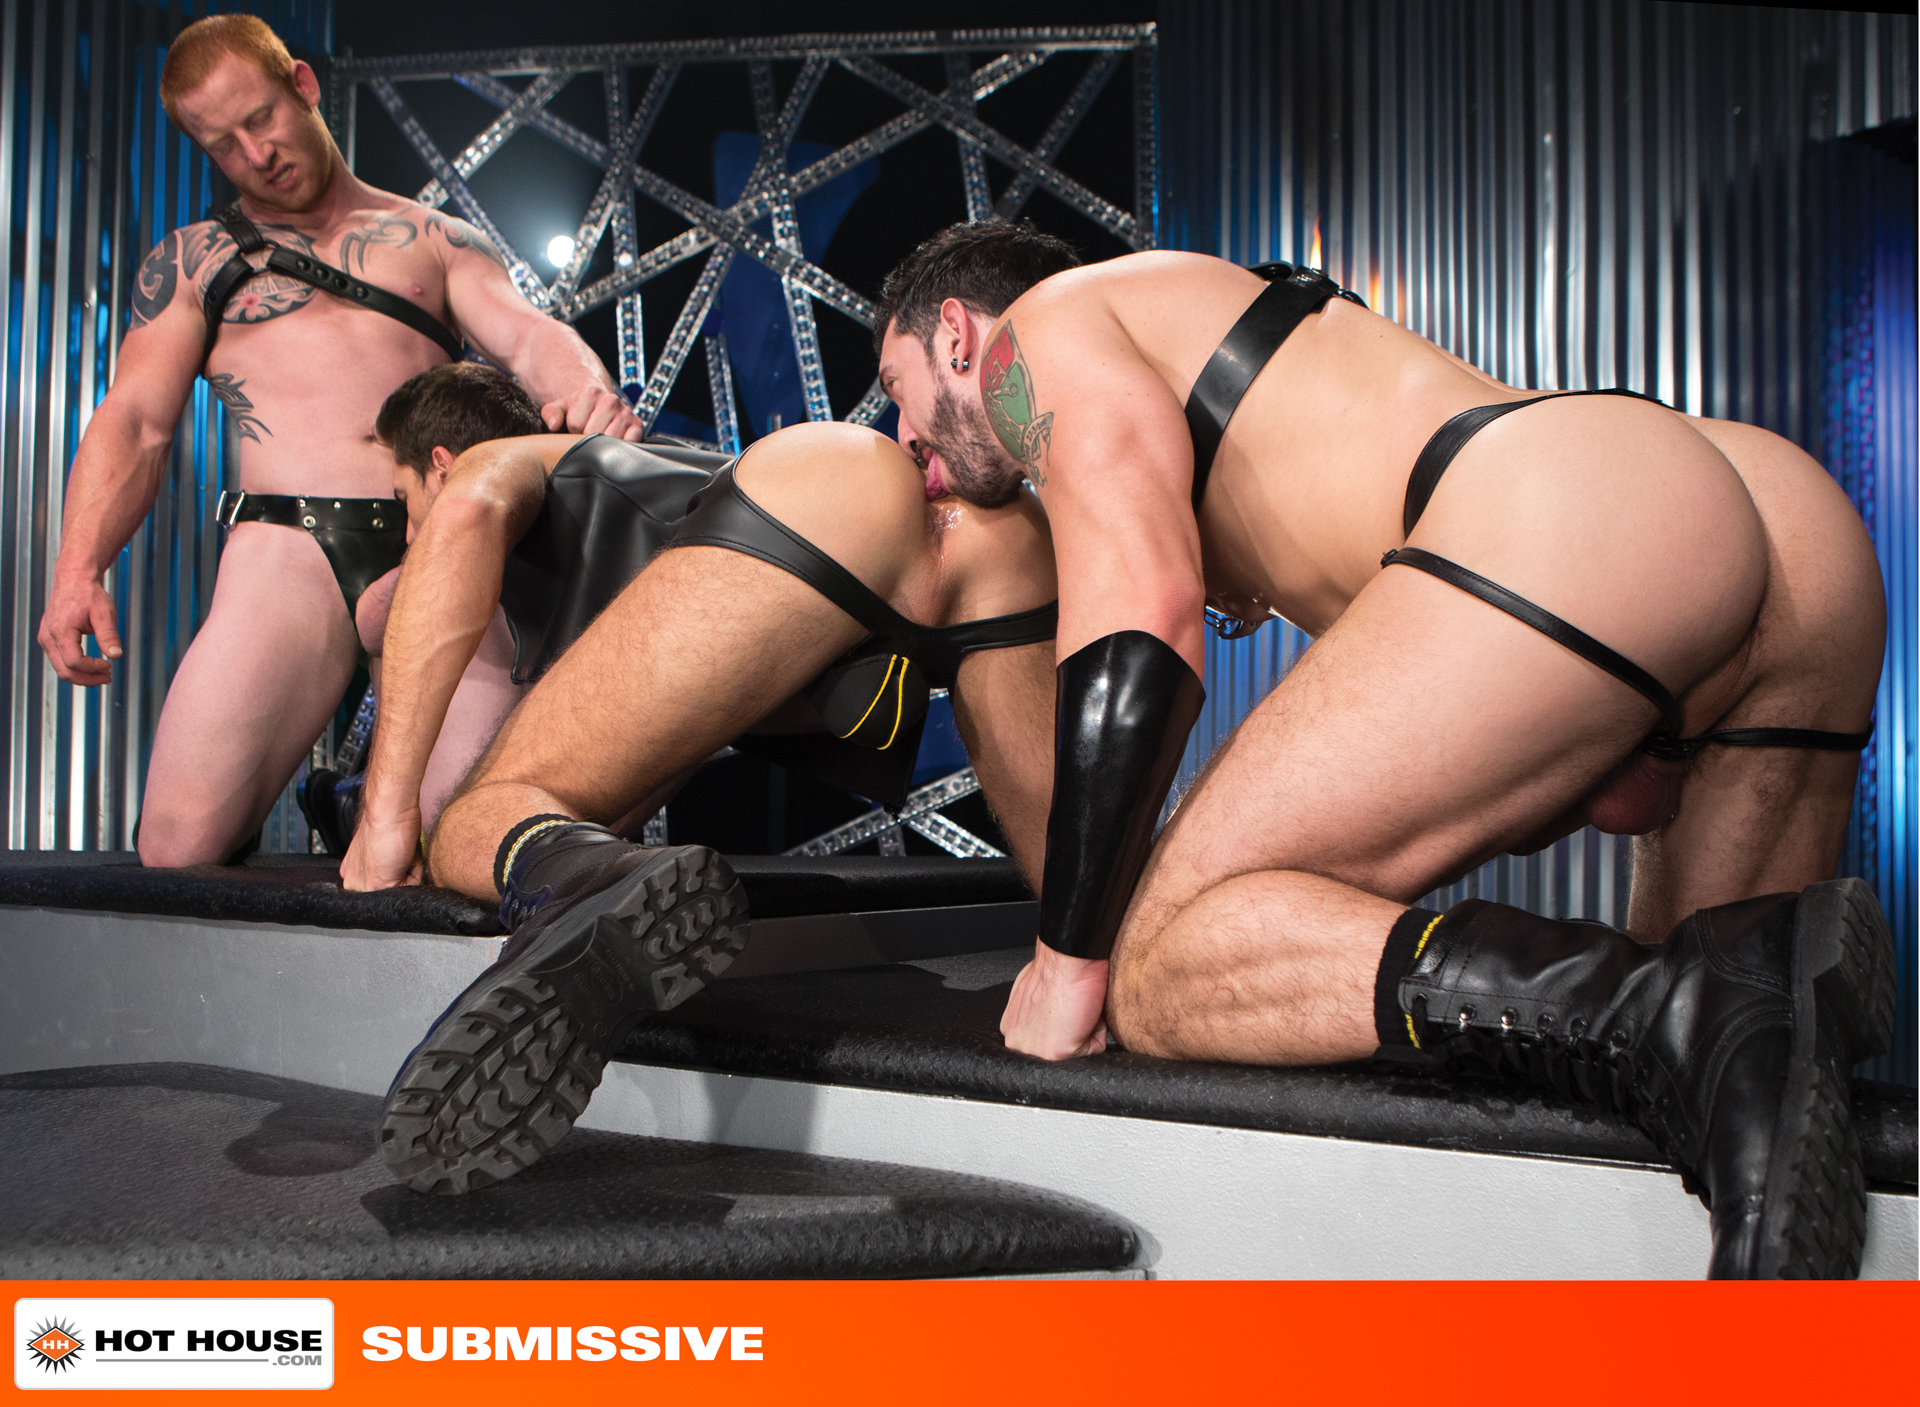 Submissive – Jimmy Durano, Jordan and Theo Ford